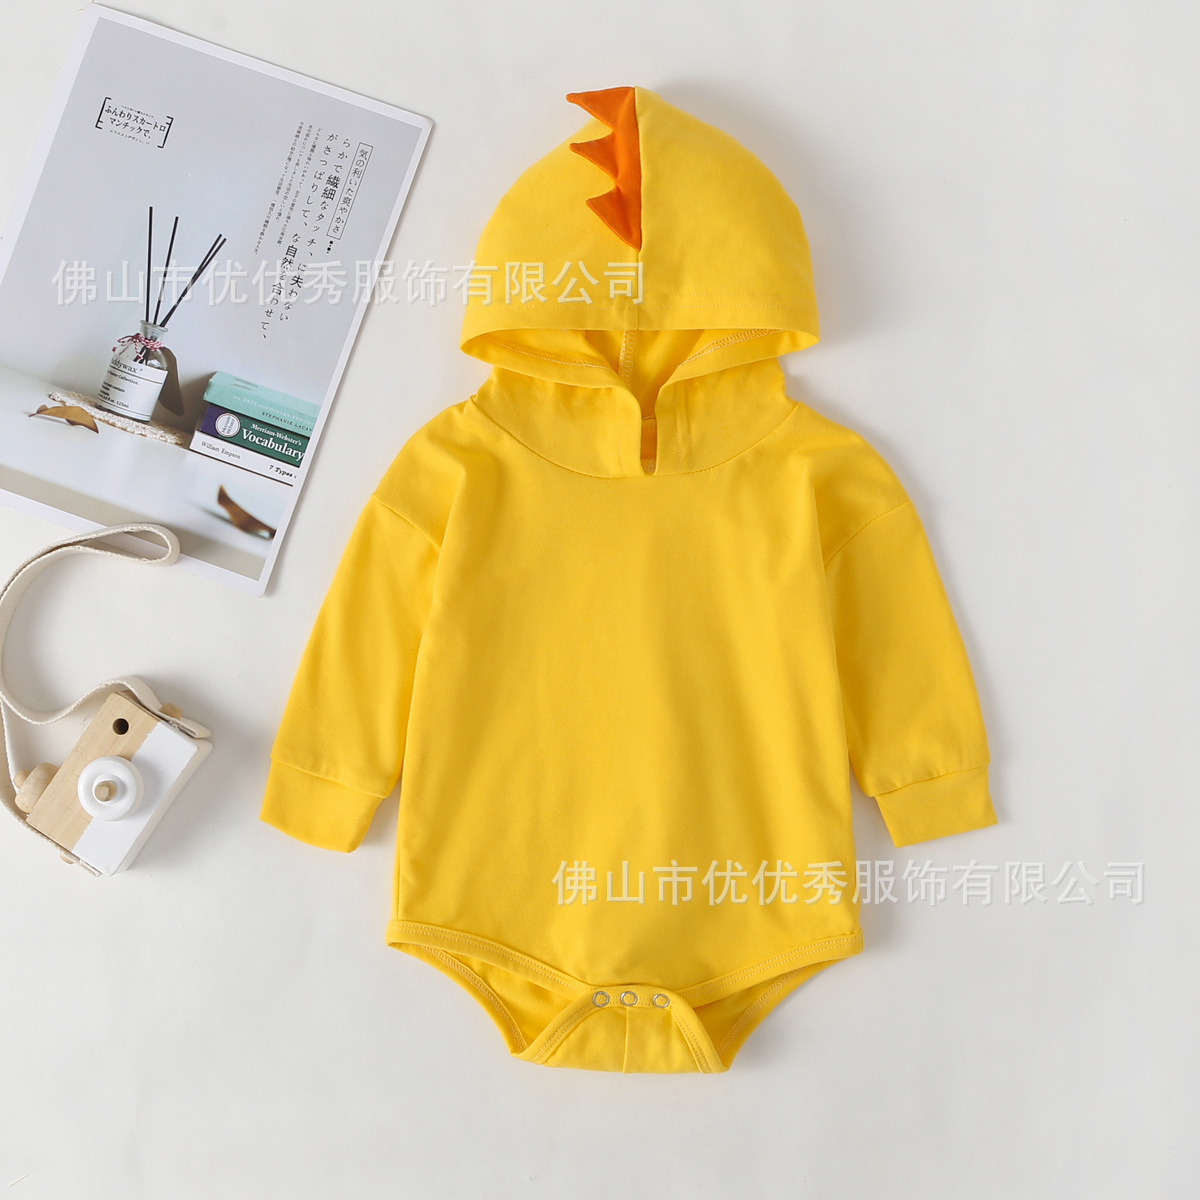 Fall 2019 popular baby yellow long sleeve dinosaur hooded long sleeve Romper in Europe and America